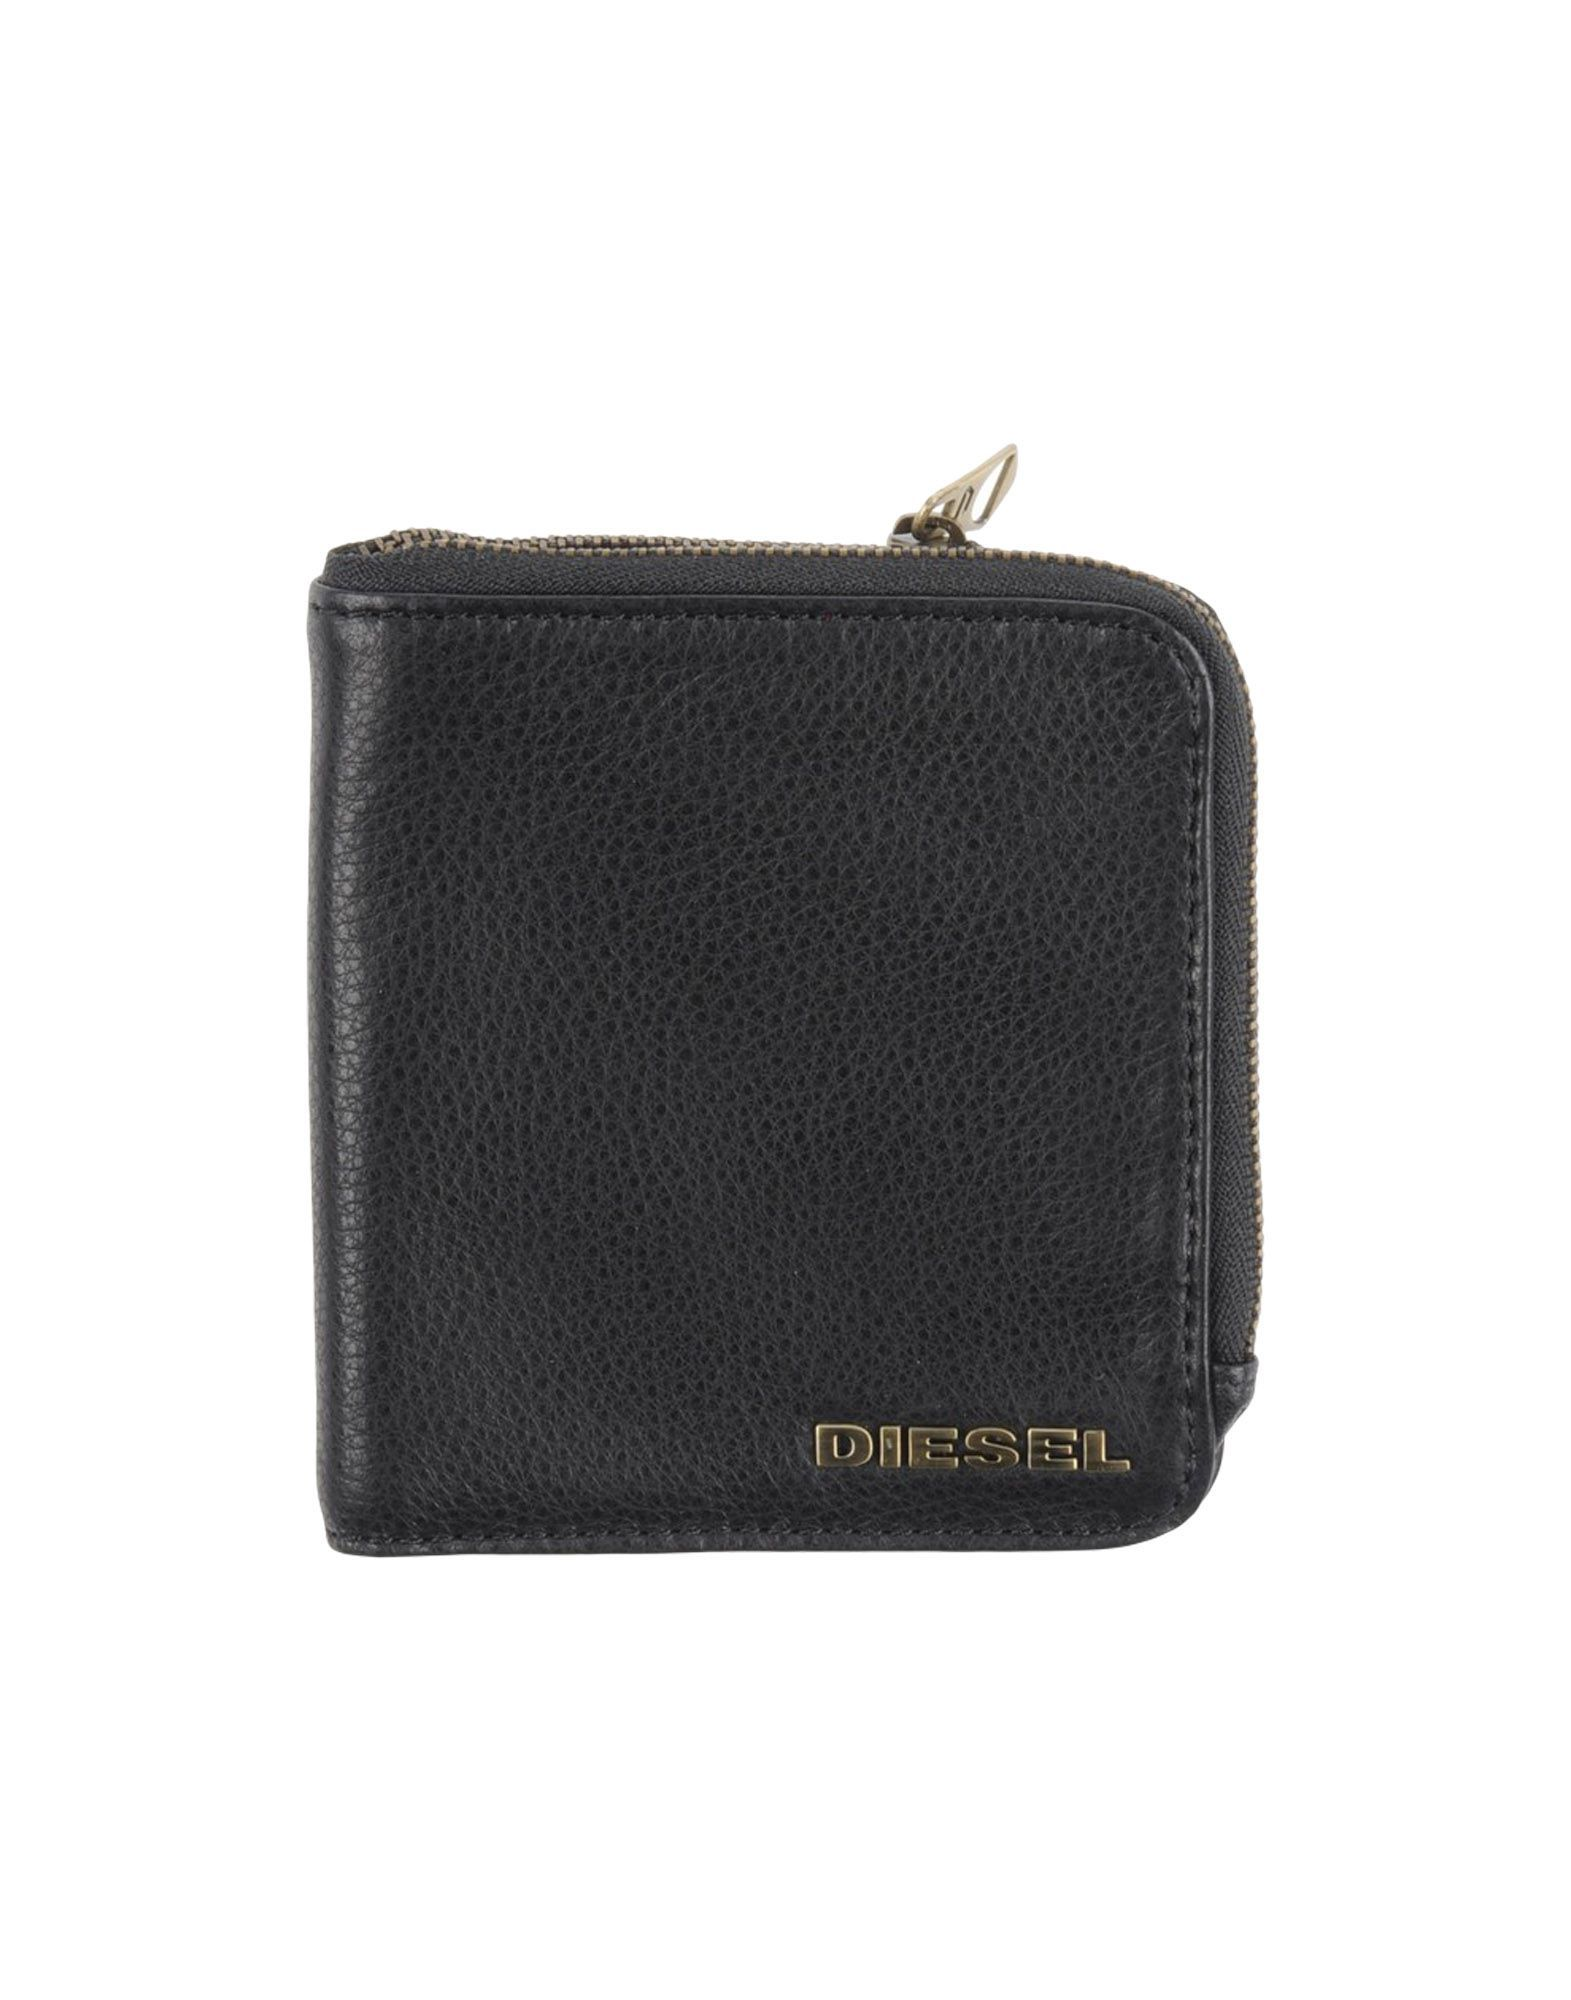 Small Leather Goods - Wallets Diesel rzP6t